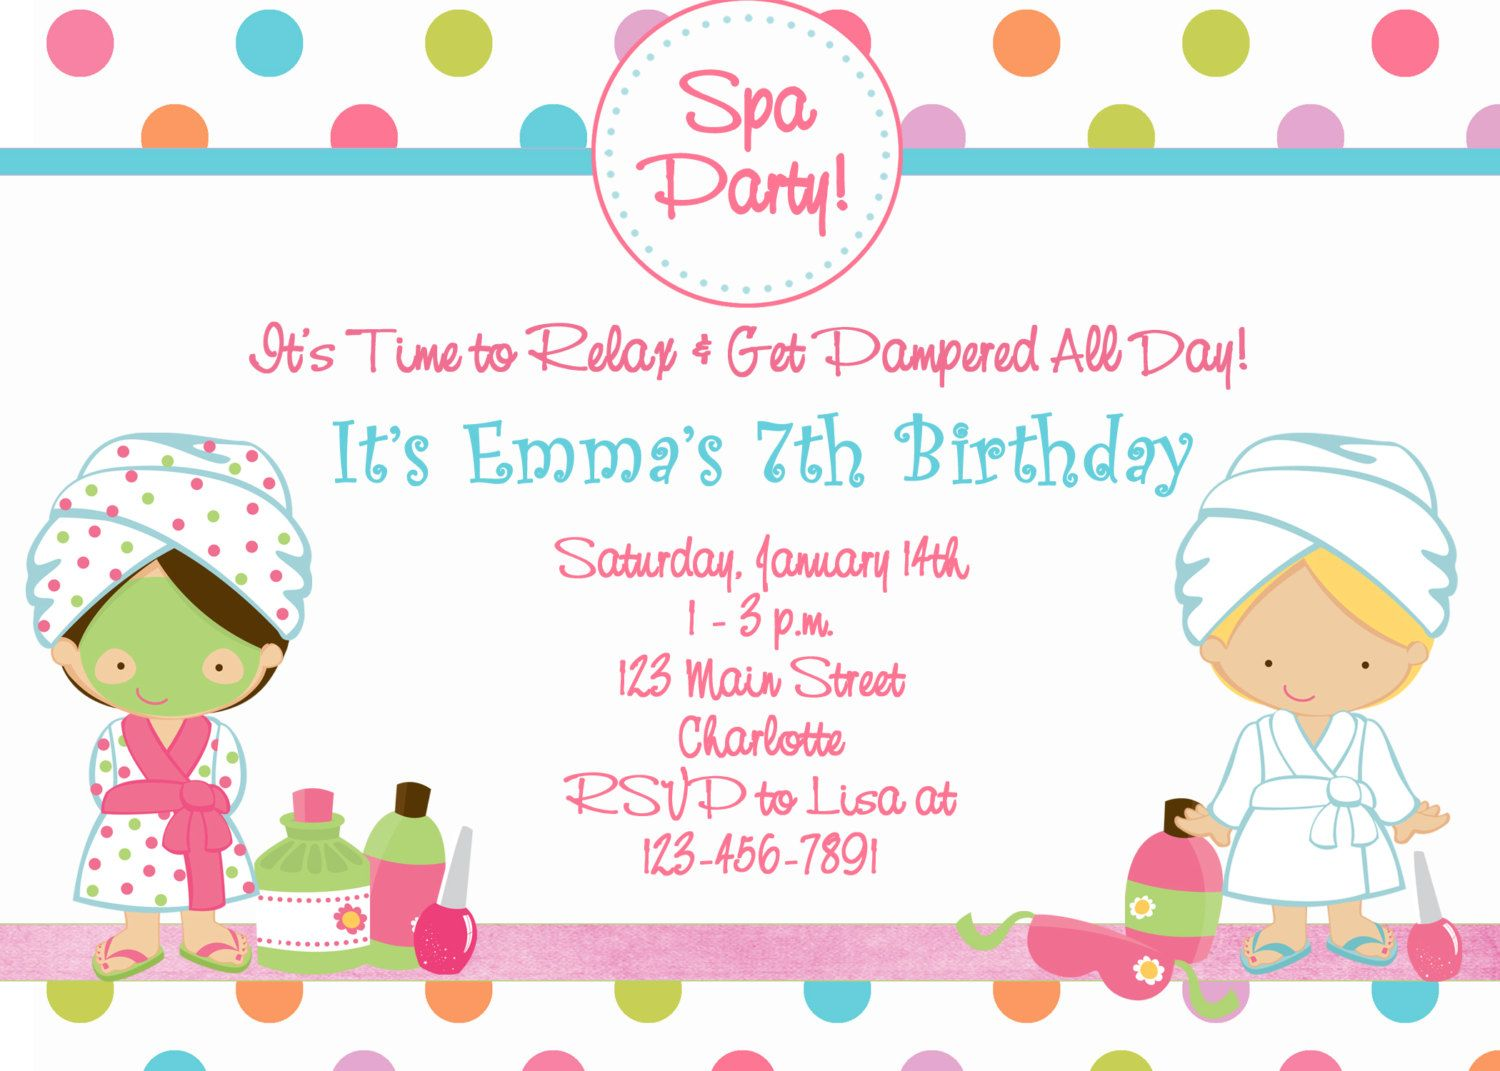 Free Printable Spa Birthday Party Invitations – Party Invitations for Free